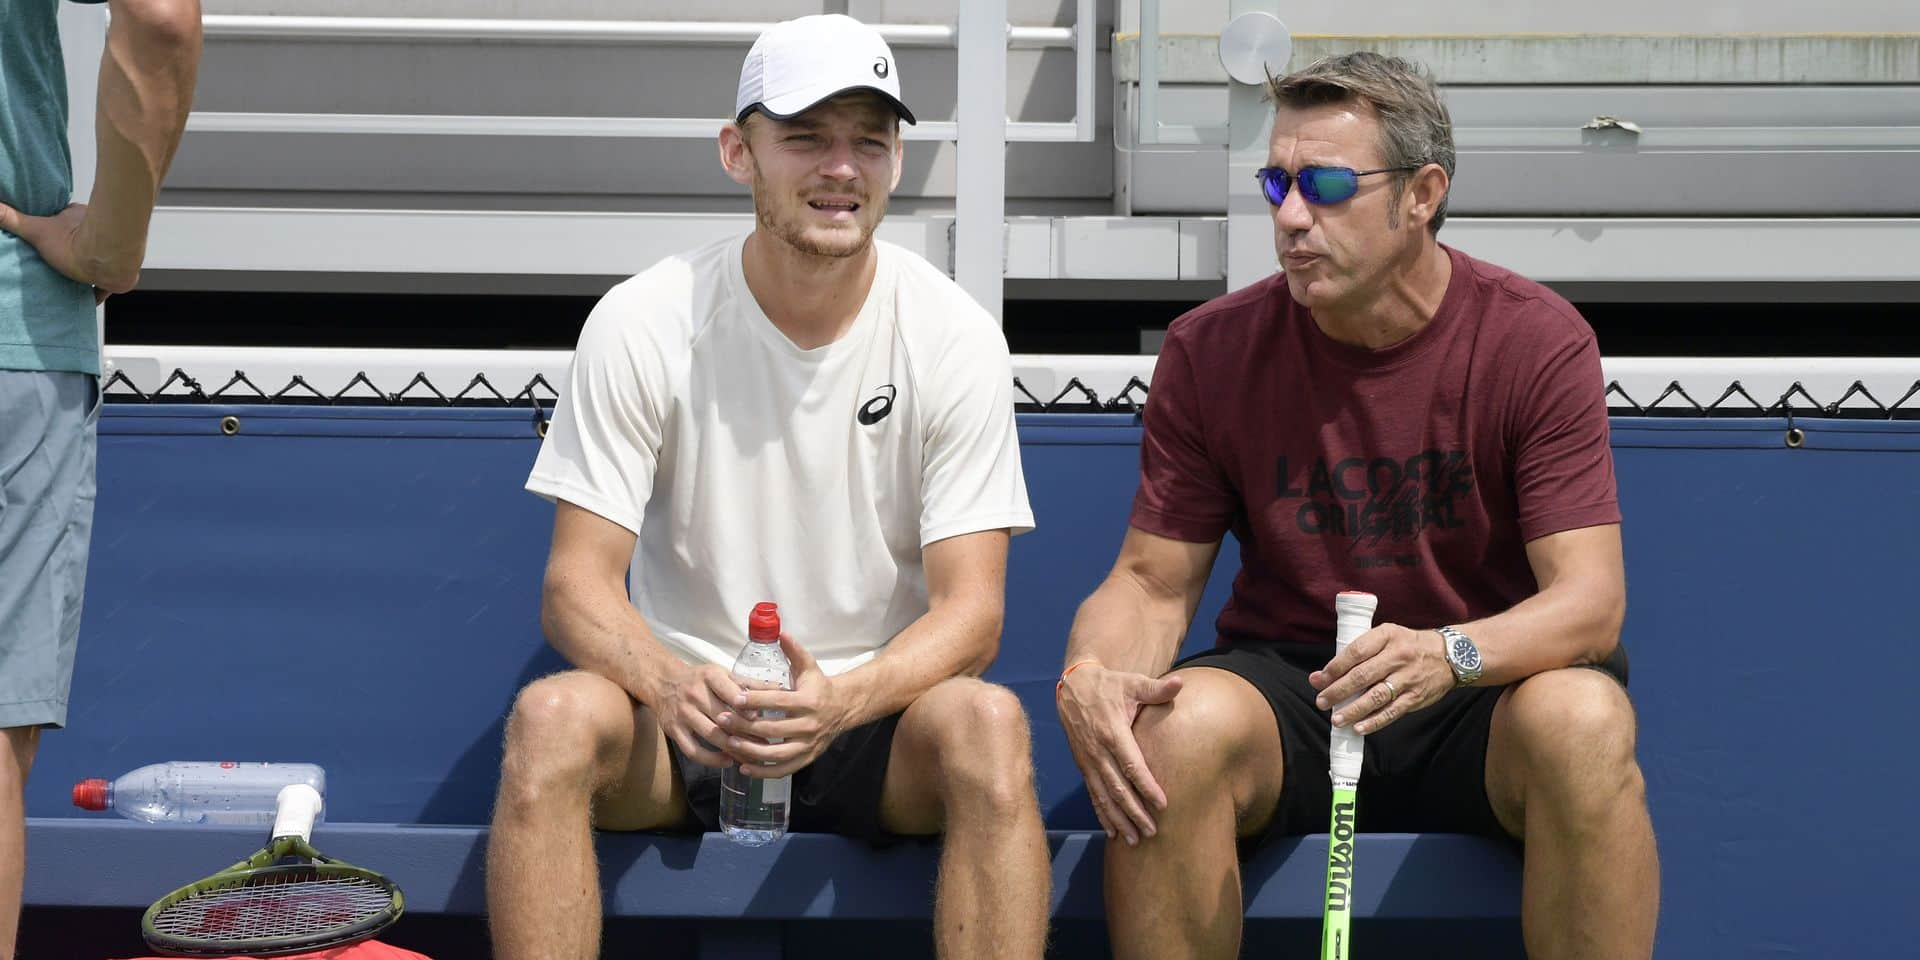 Belgian David Goffin and Goffin's coach Thierry Van Cleemput pictured during a training session ahead of the 118th US Open Grand Slam tennis tournament, at Flushing Meadow, in New York City, USA, Friday 24 August 2018. BELGA PHOTO YORICK JANSENS